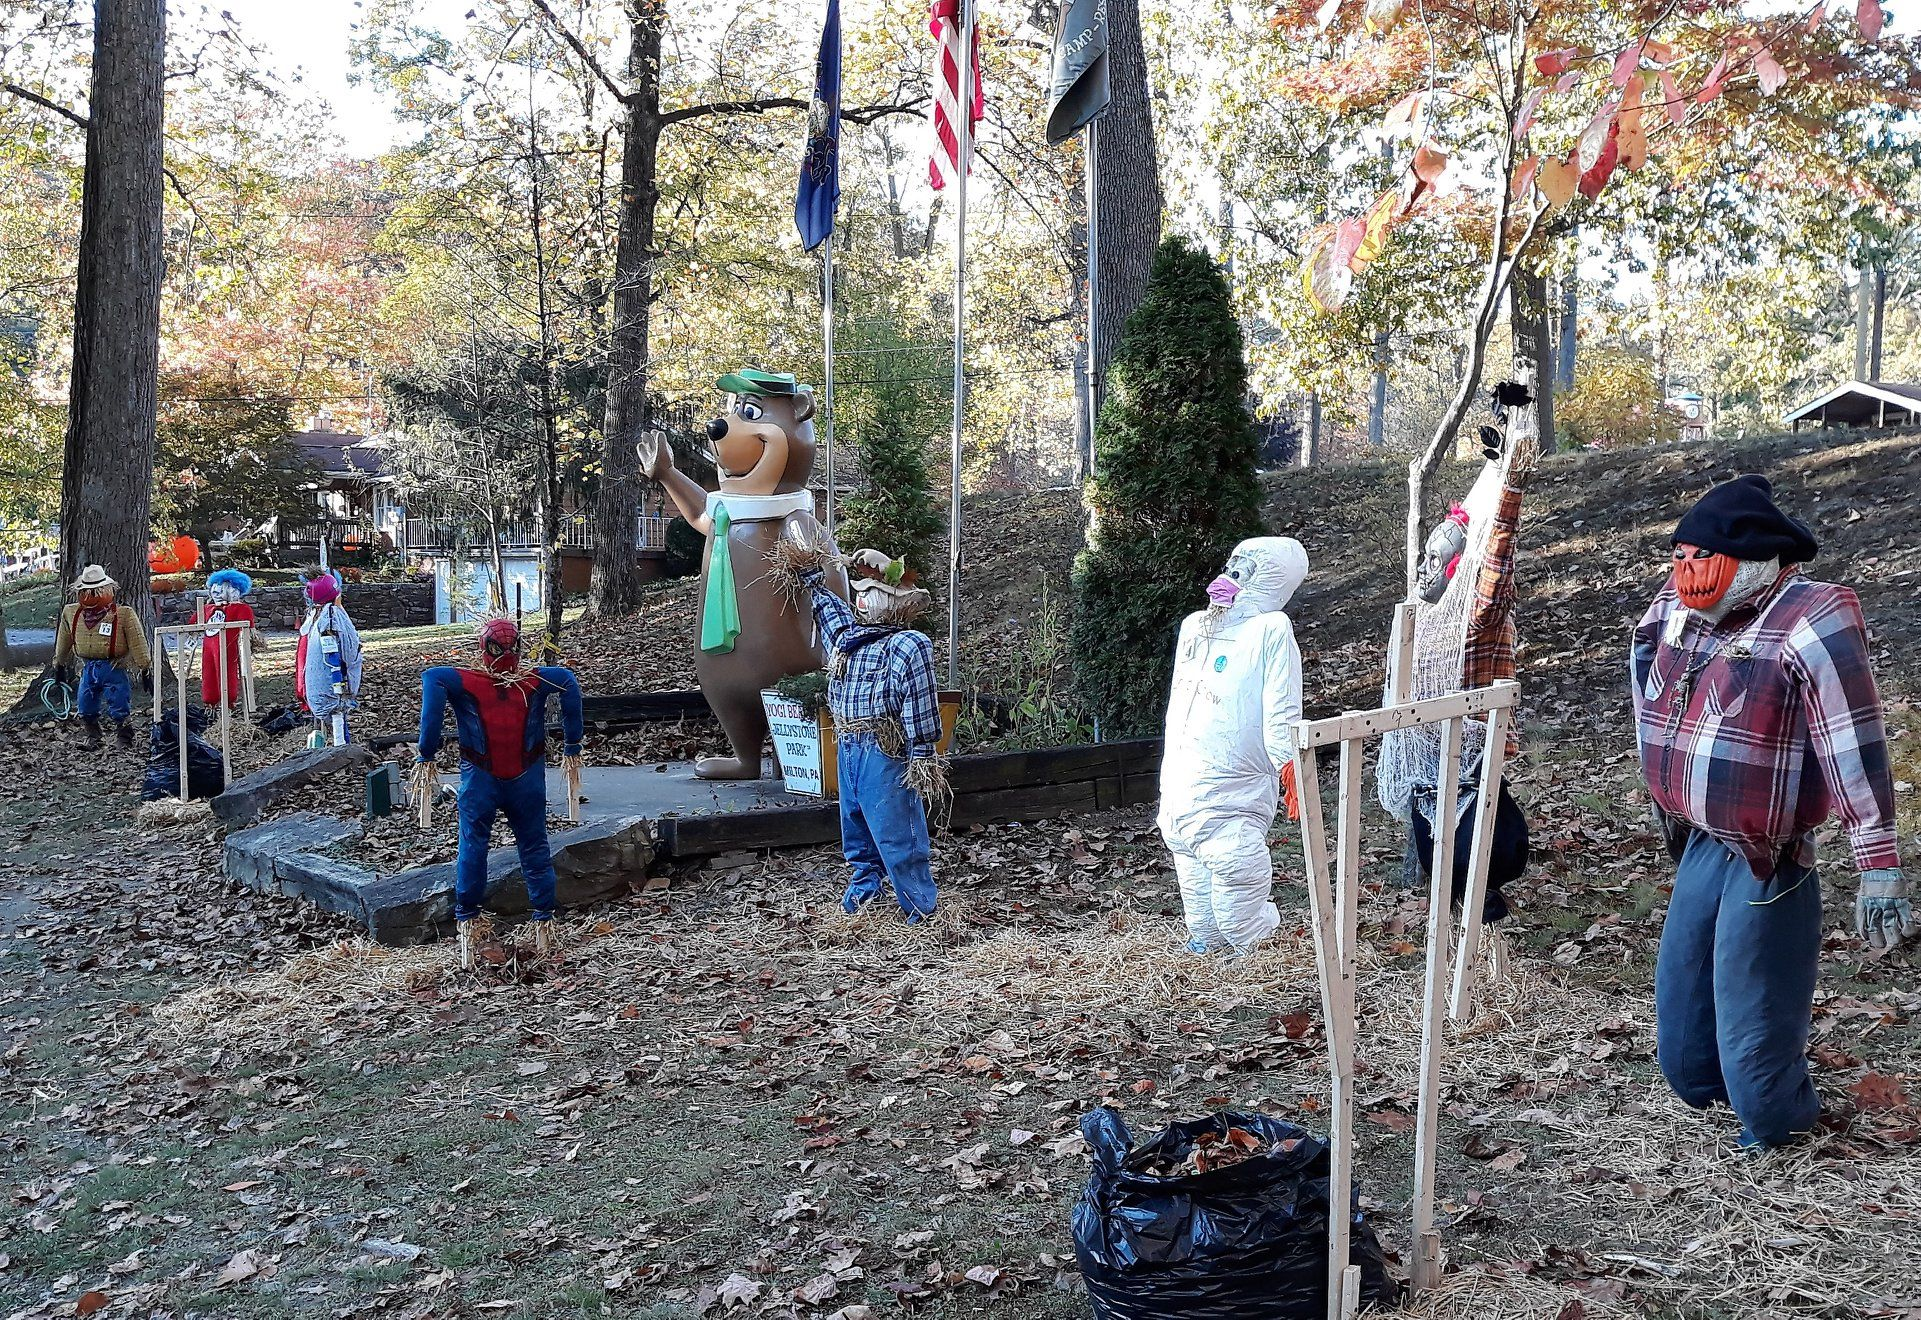 Scarecrows and halloween decor at campground